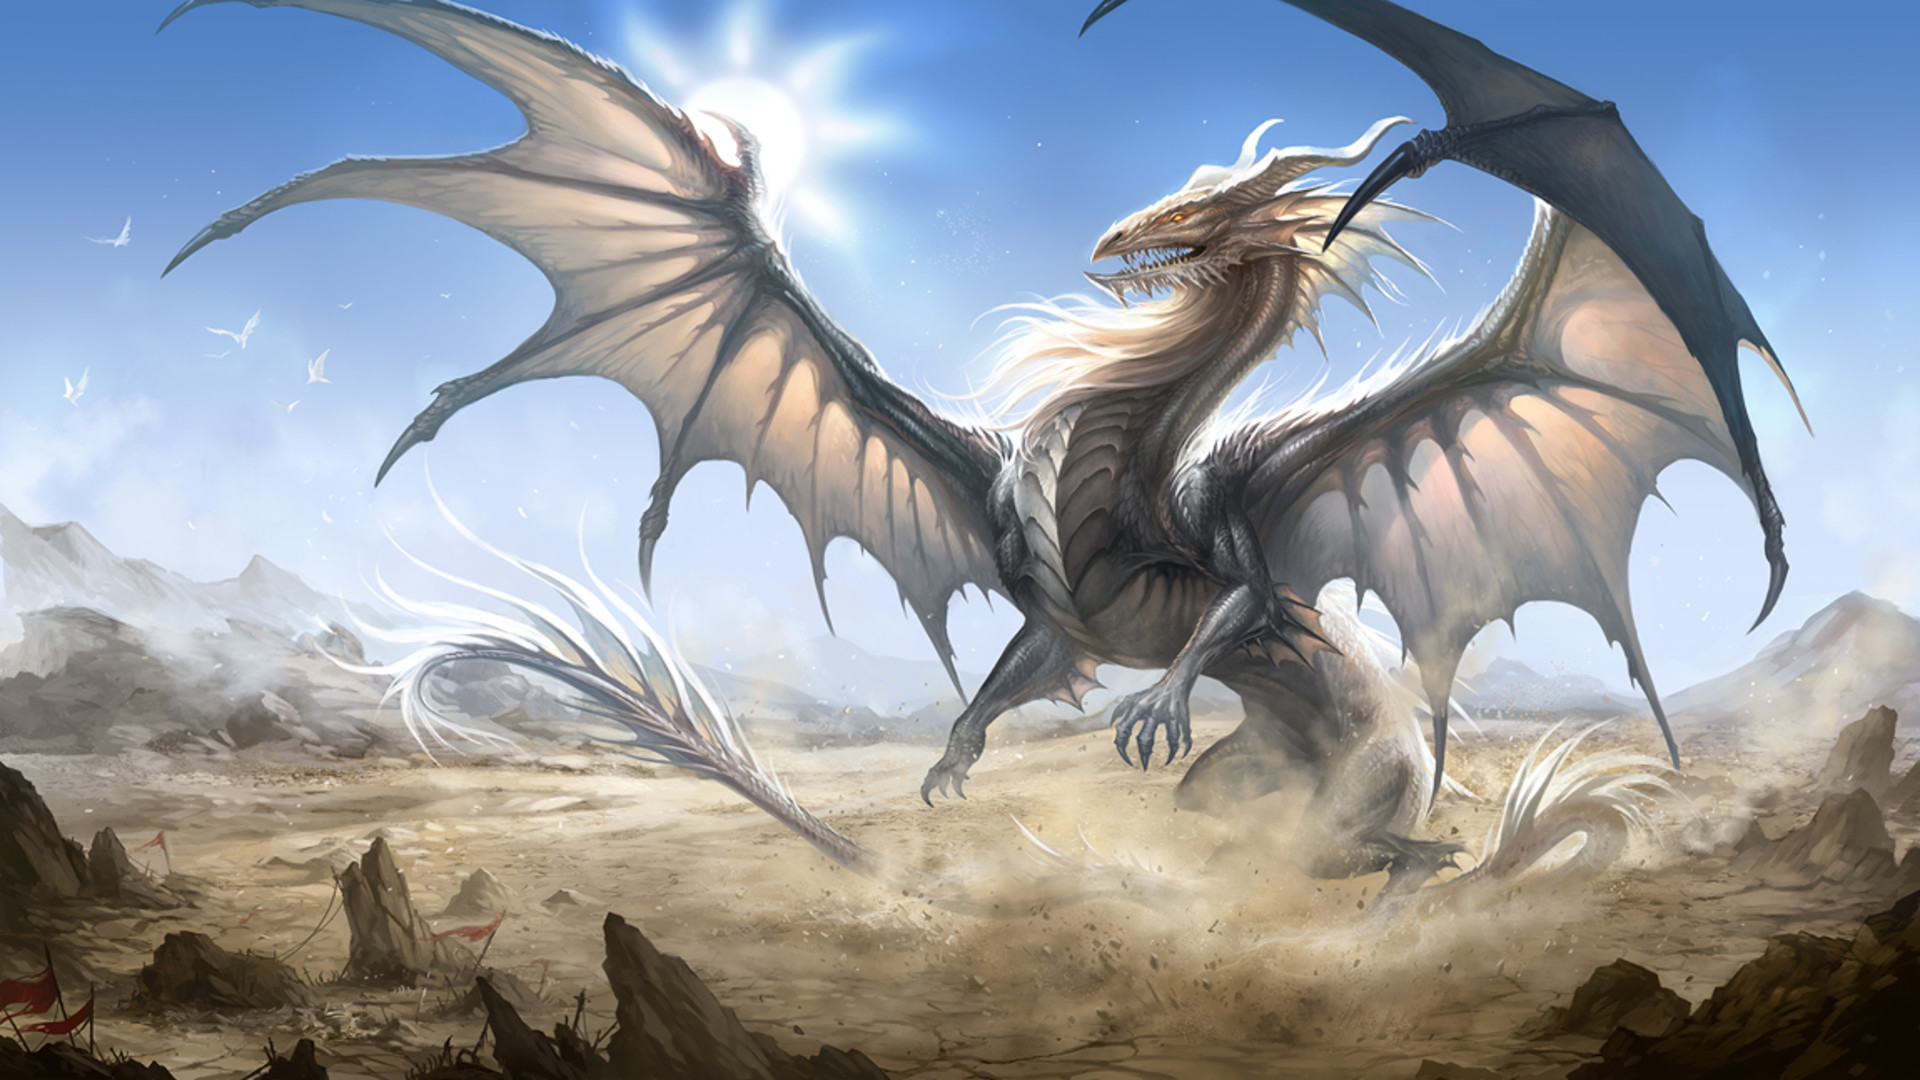 1920x1080 Dragon HD Wallpaper | Background Image |  | ID:441572 - Wallpaper  Abyss